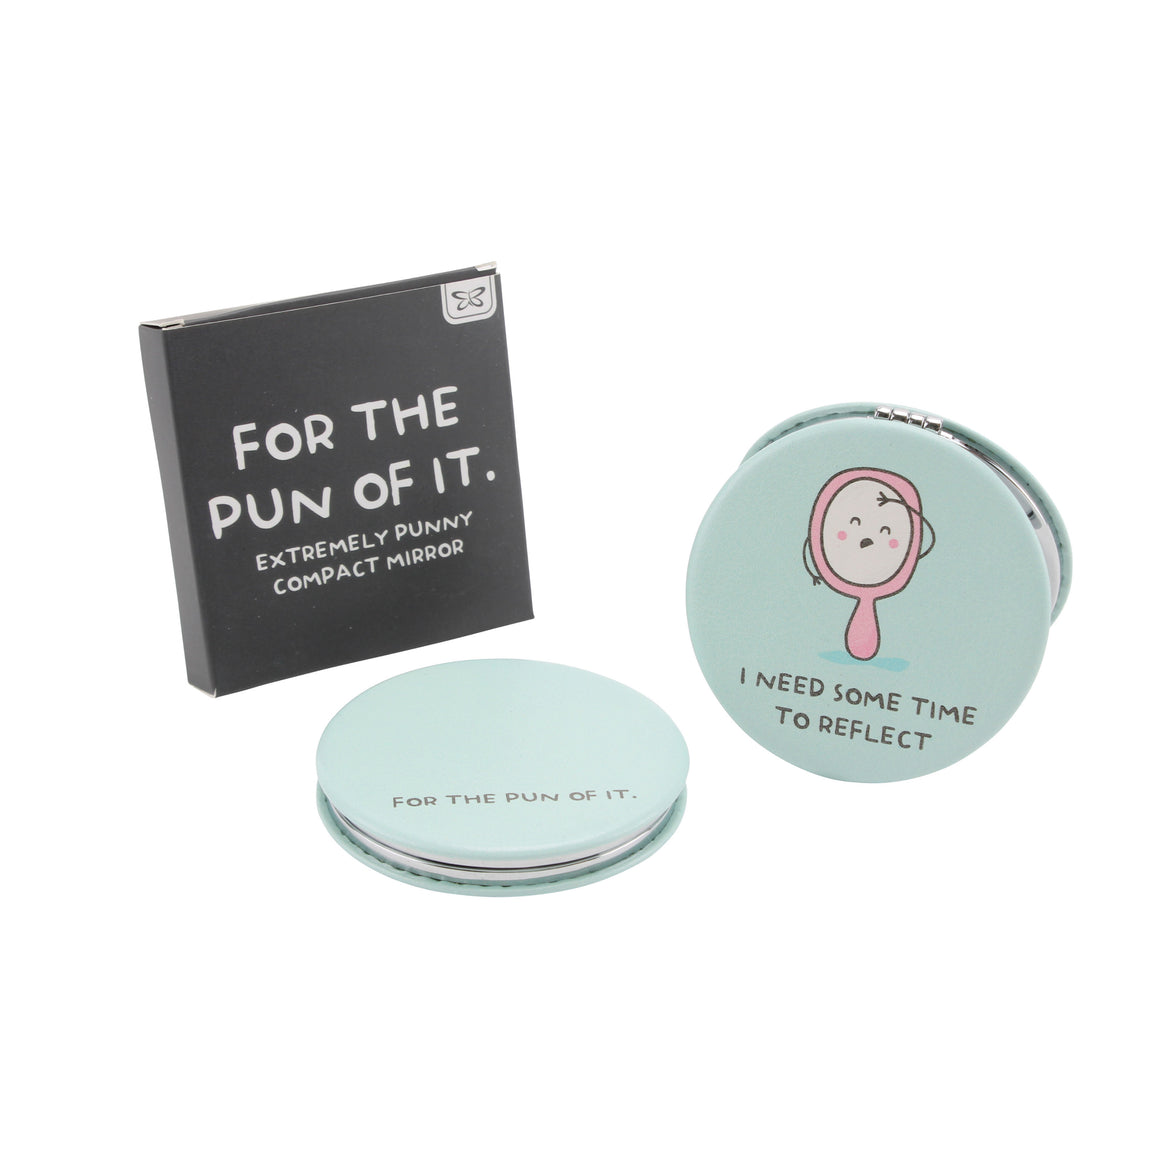 'I Need Some Time To Reflect' Compact Mirror - The Love Trees